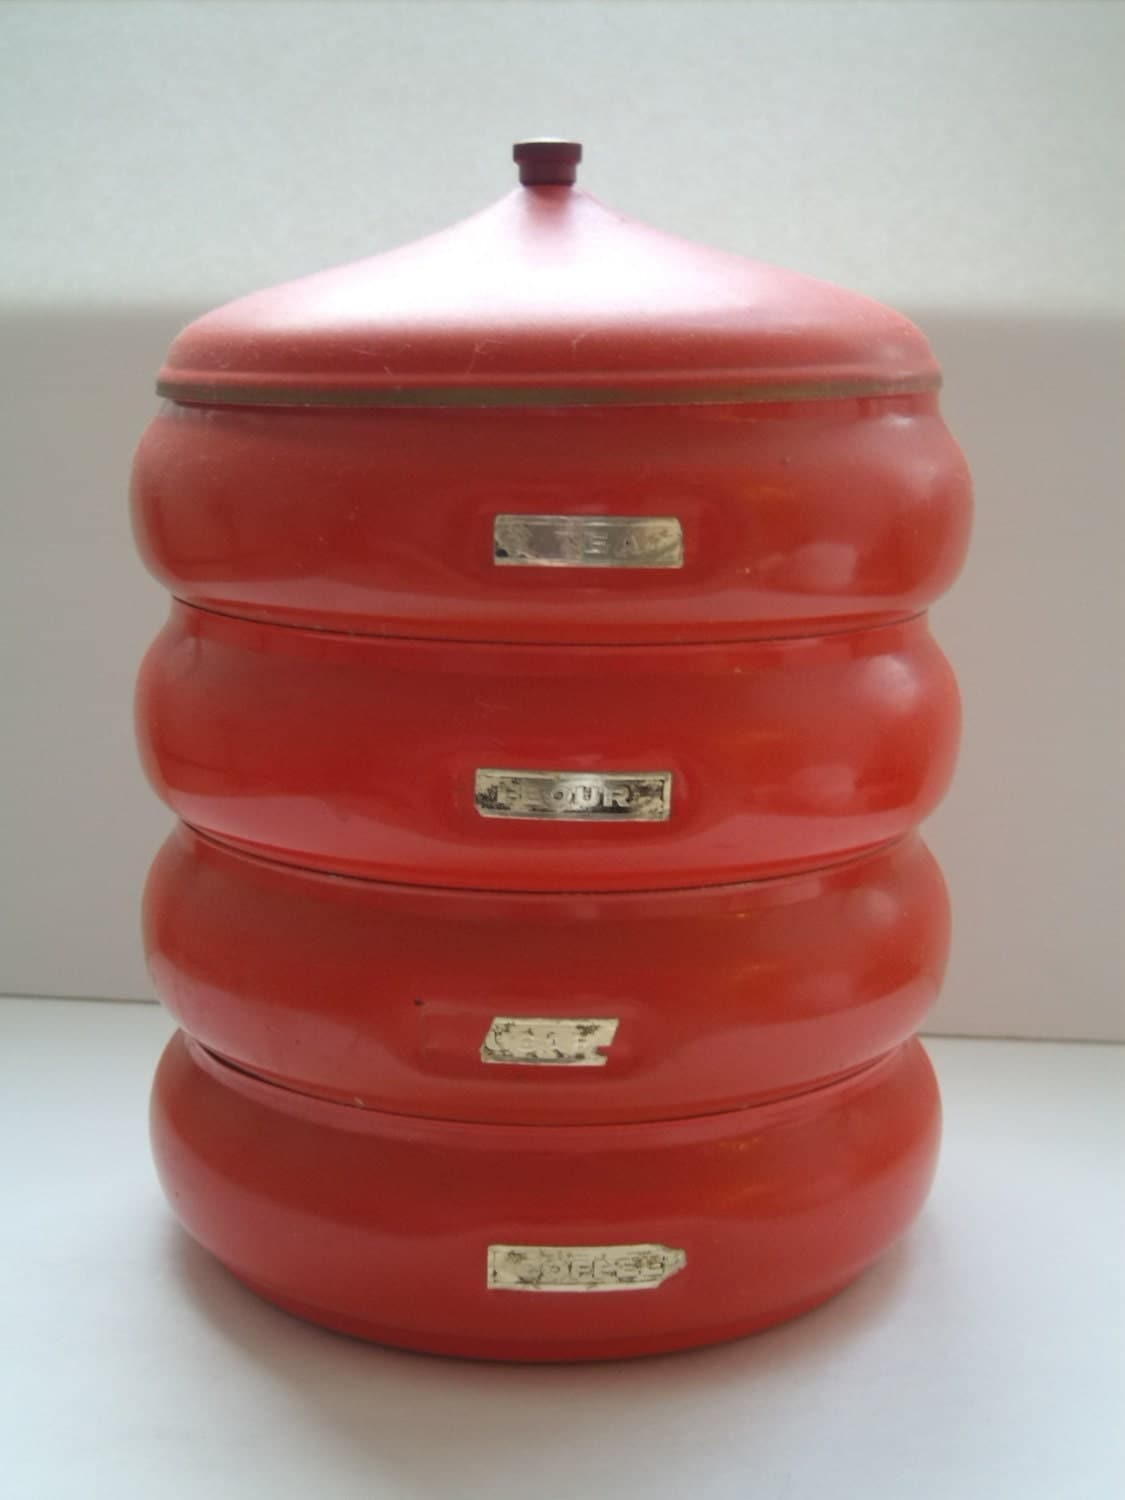 Vintage Red Orange Stacking Canisters Coffee Sugar Tea Flour